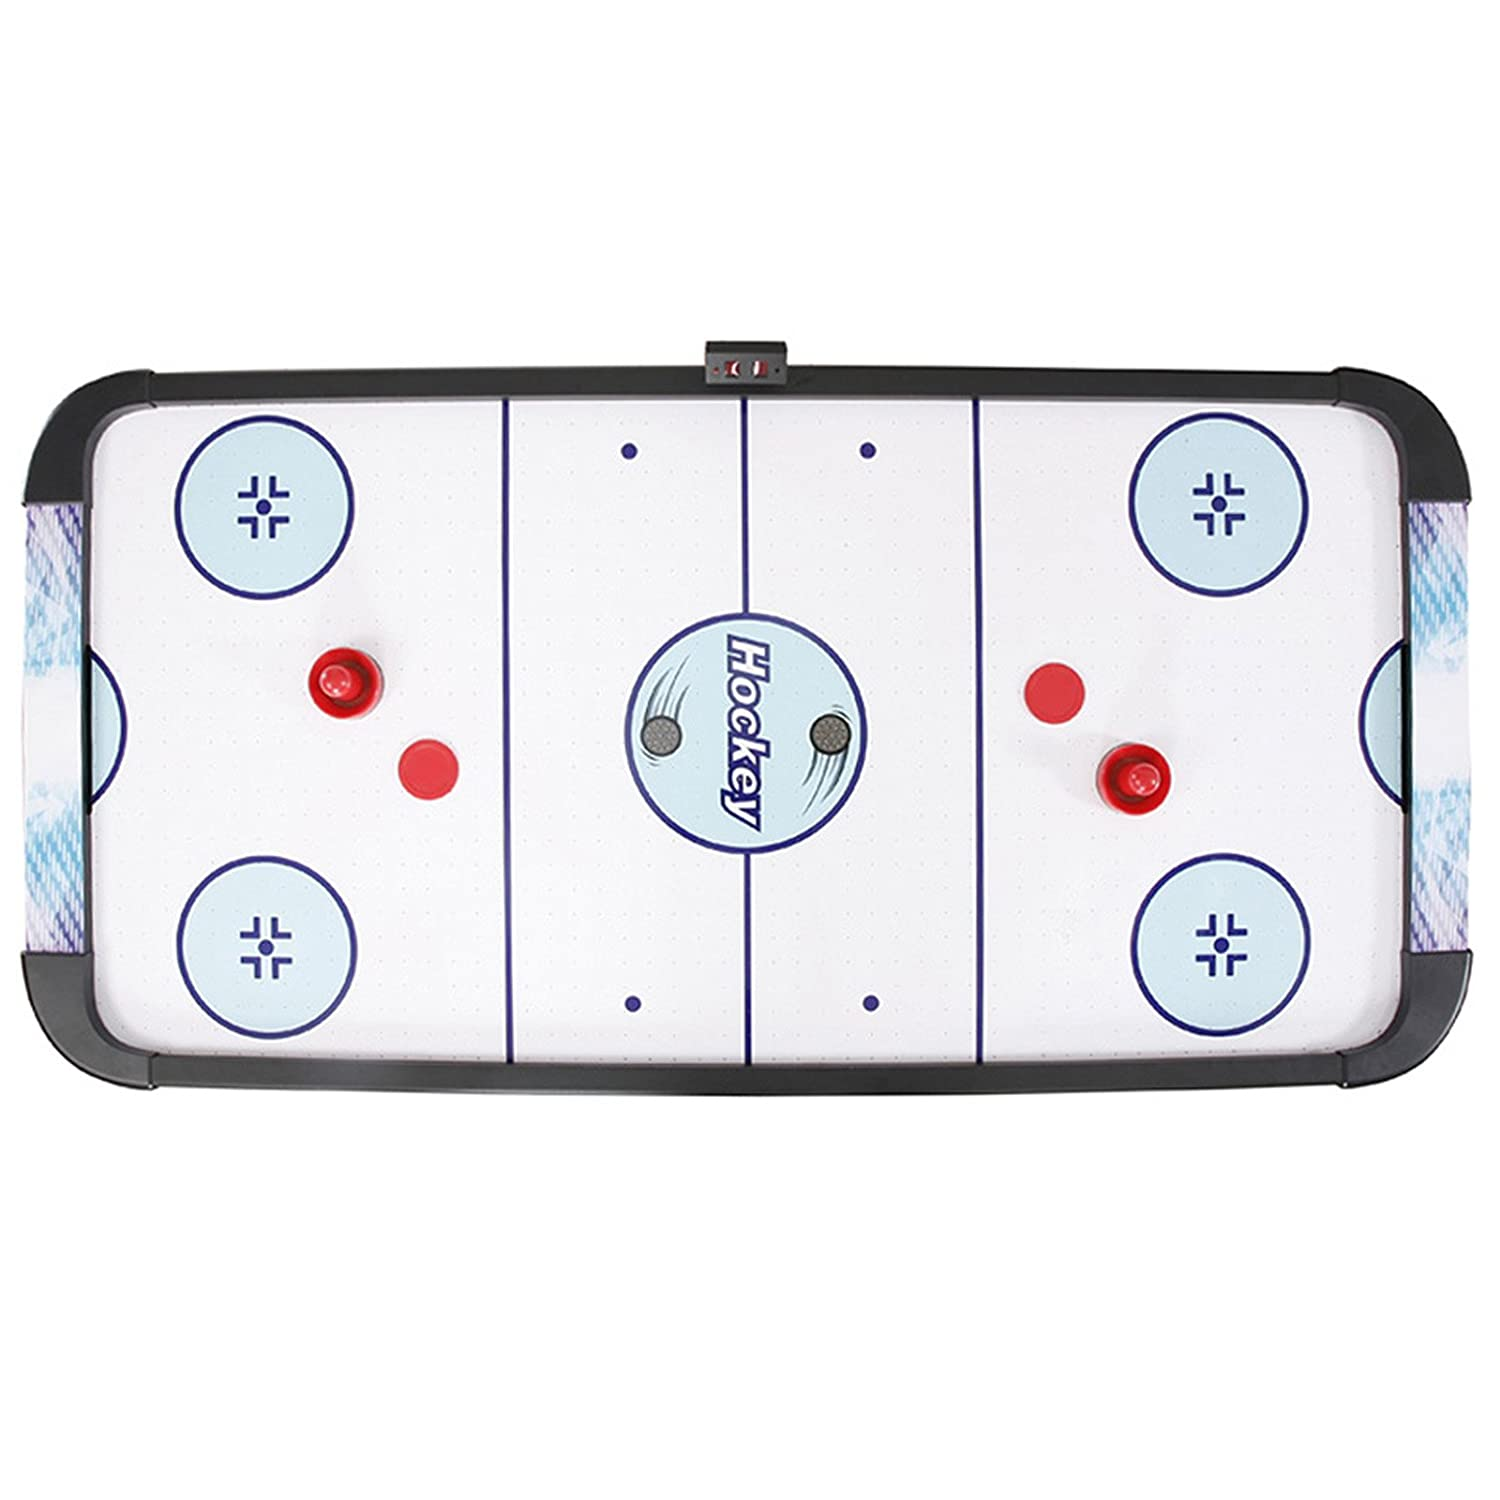 Air hockey table dimensions - Amazon Com Hathaway Face Off Air Hockey Table With Electronic Scoring 5 Feet Blue Black 60 X 26 X 31 Inch Air Hockey Equipment Sports Outdoors